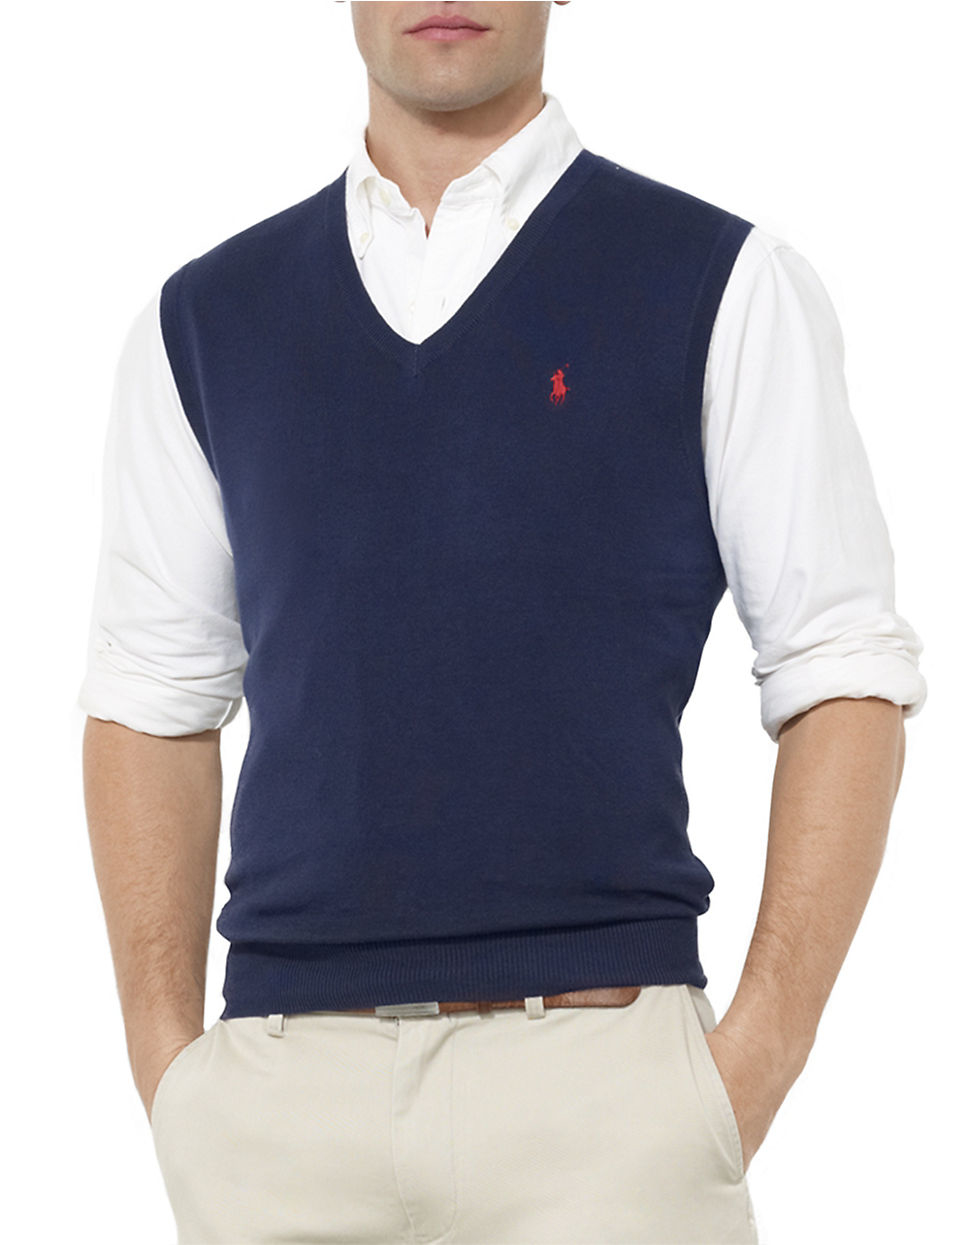 polo-ralph-lauren-newport-navy-pima-cotton-v-neck-sweater-vest -blue-product-0-468078044-normal.jpeg